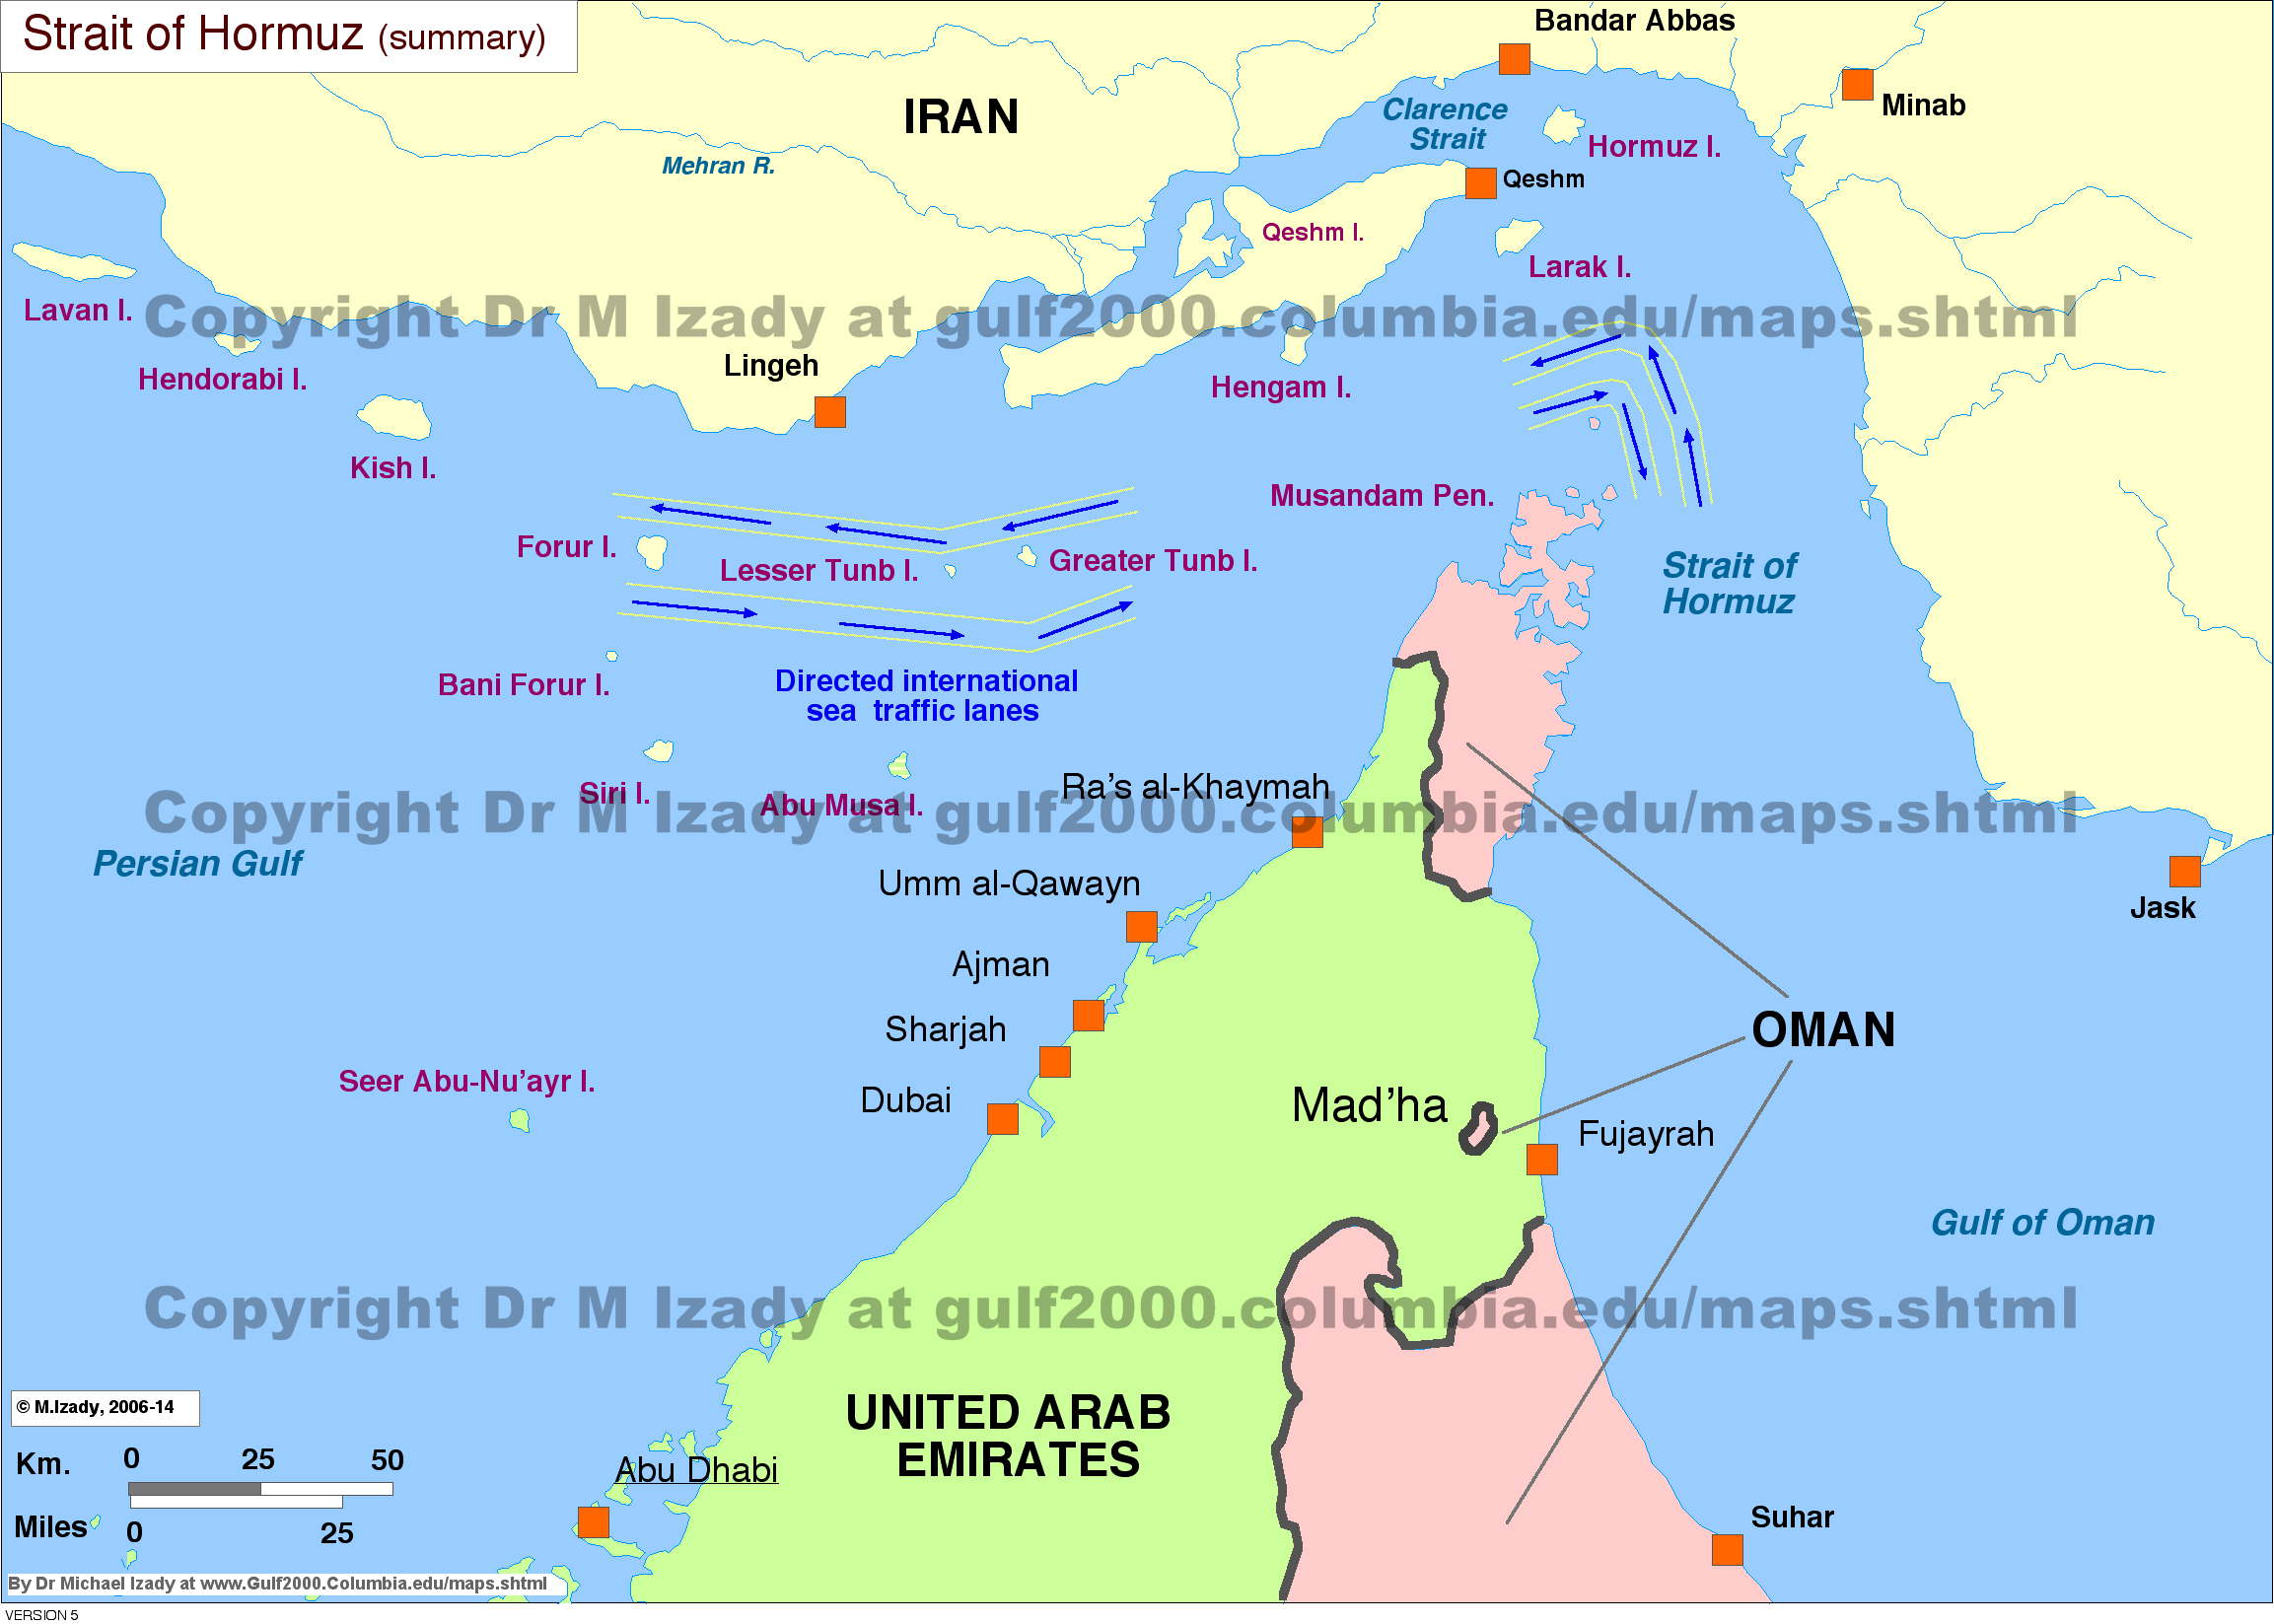 Middle East Map Strait Of Hormuz.Strait Of Hormuz Maps The Gulf 2000 Project Sipa Columbia